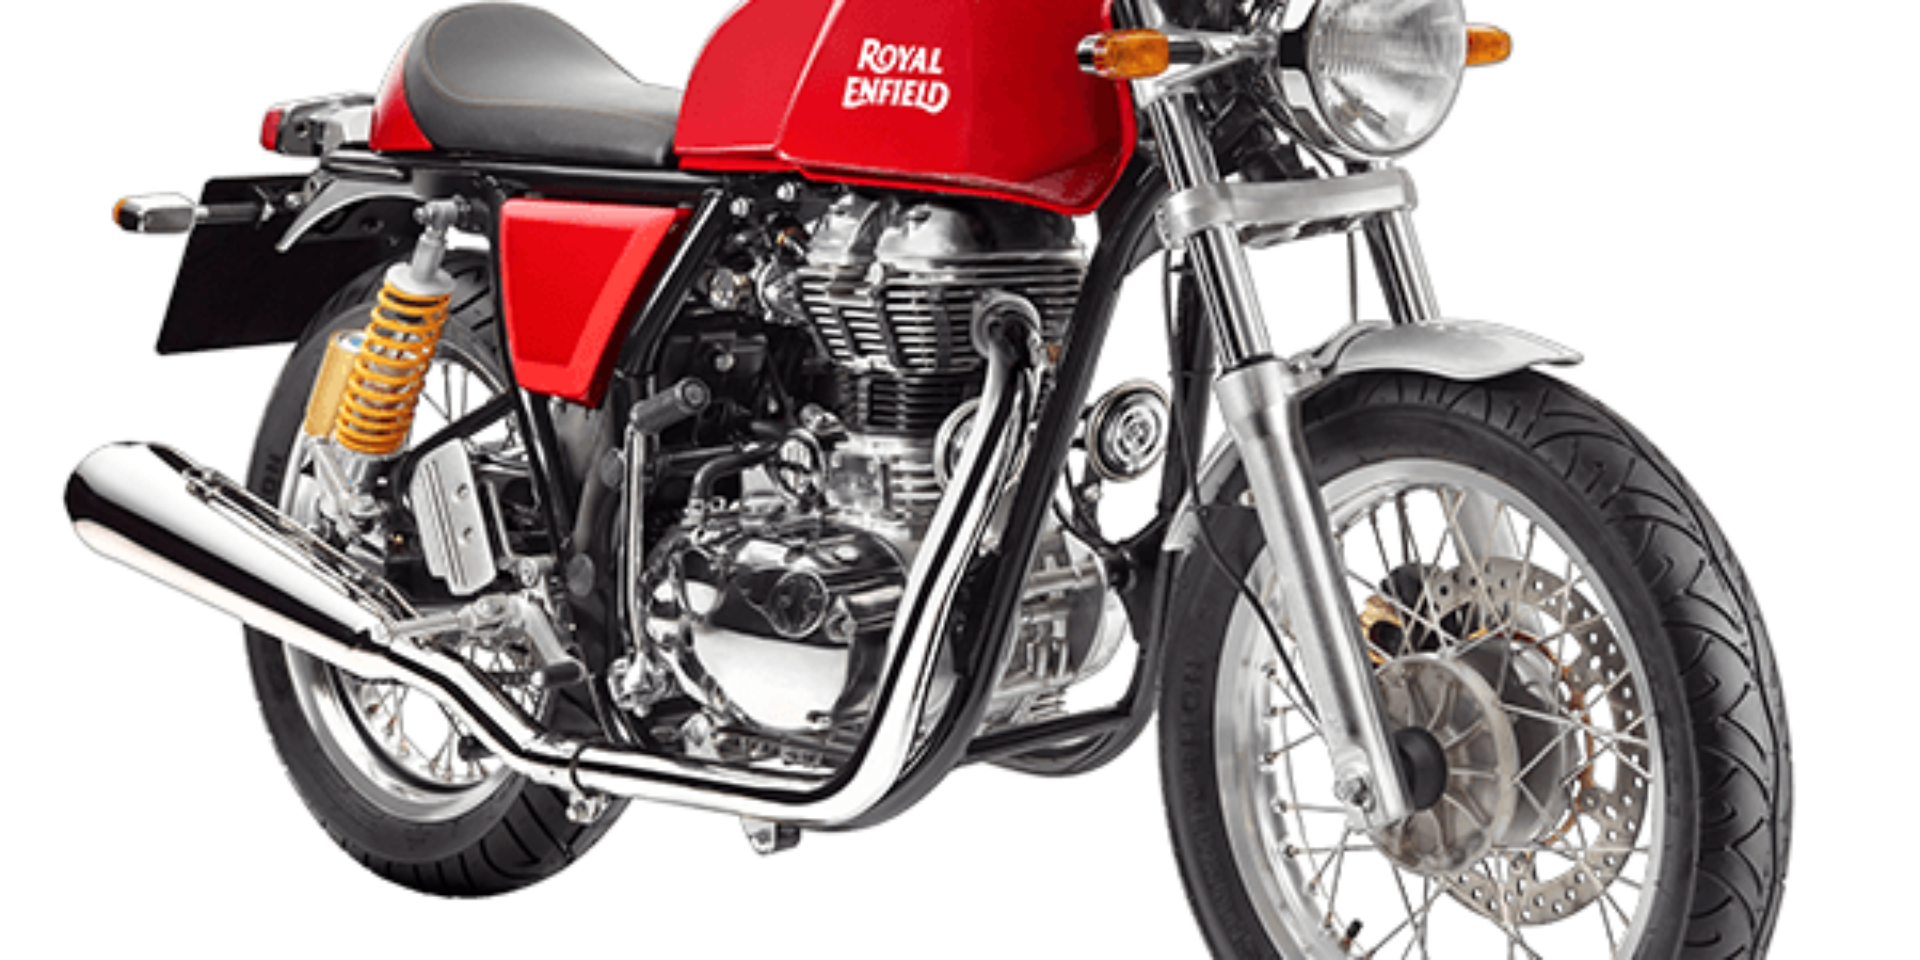 continentalGT_slant-front_red_600x463_motorcycle